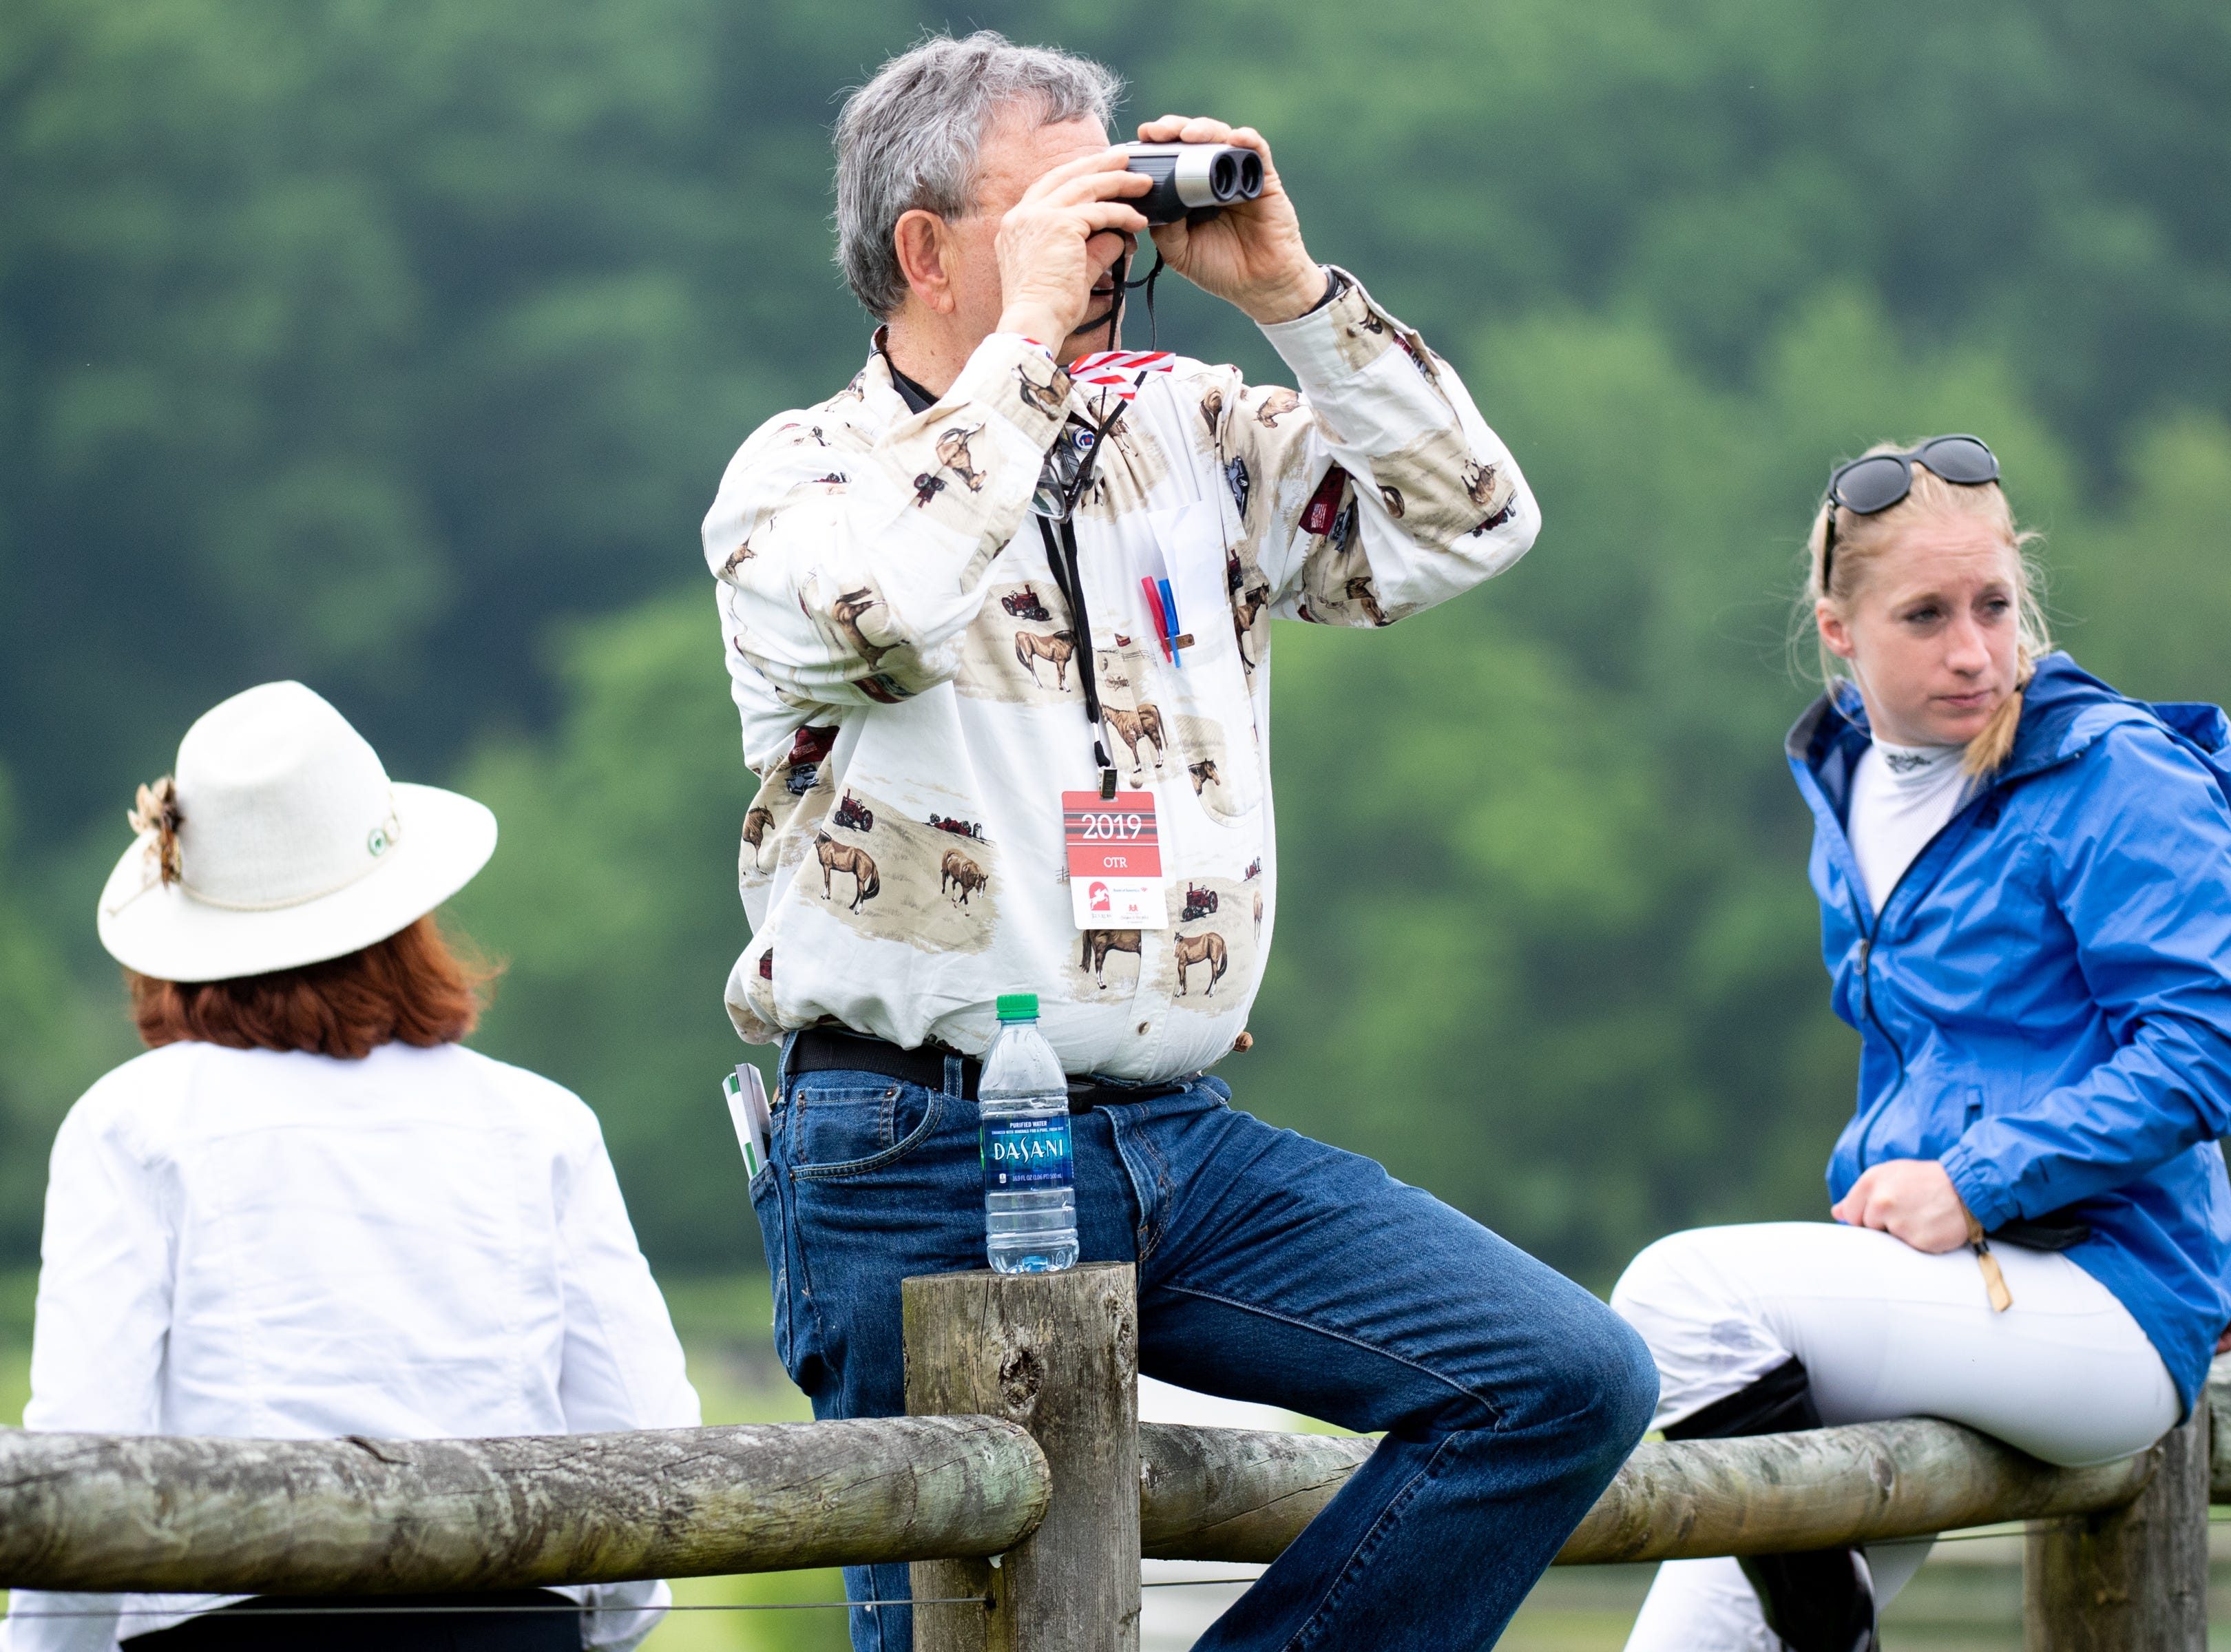 Spectators watch the first race of the Iroquois Steeplechase at Percy Warner Park Saturday, May 11, 2019, in Nashville, Tenn.